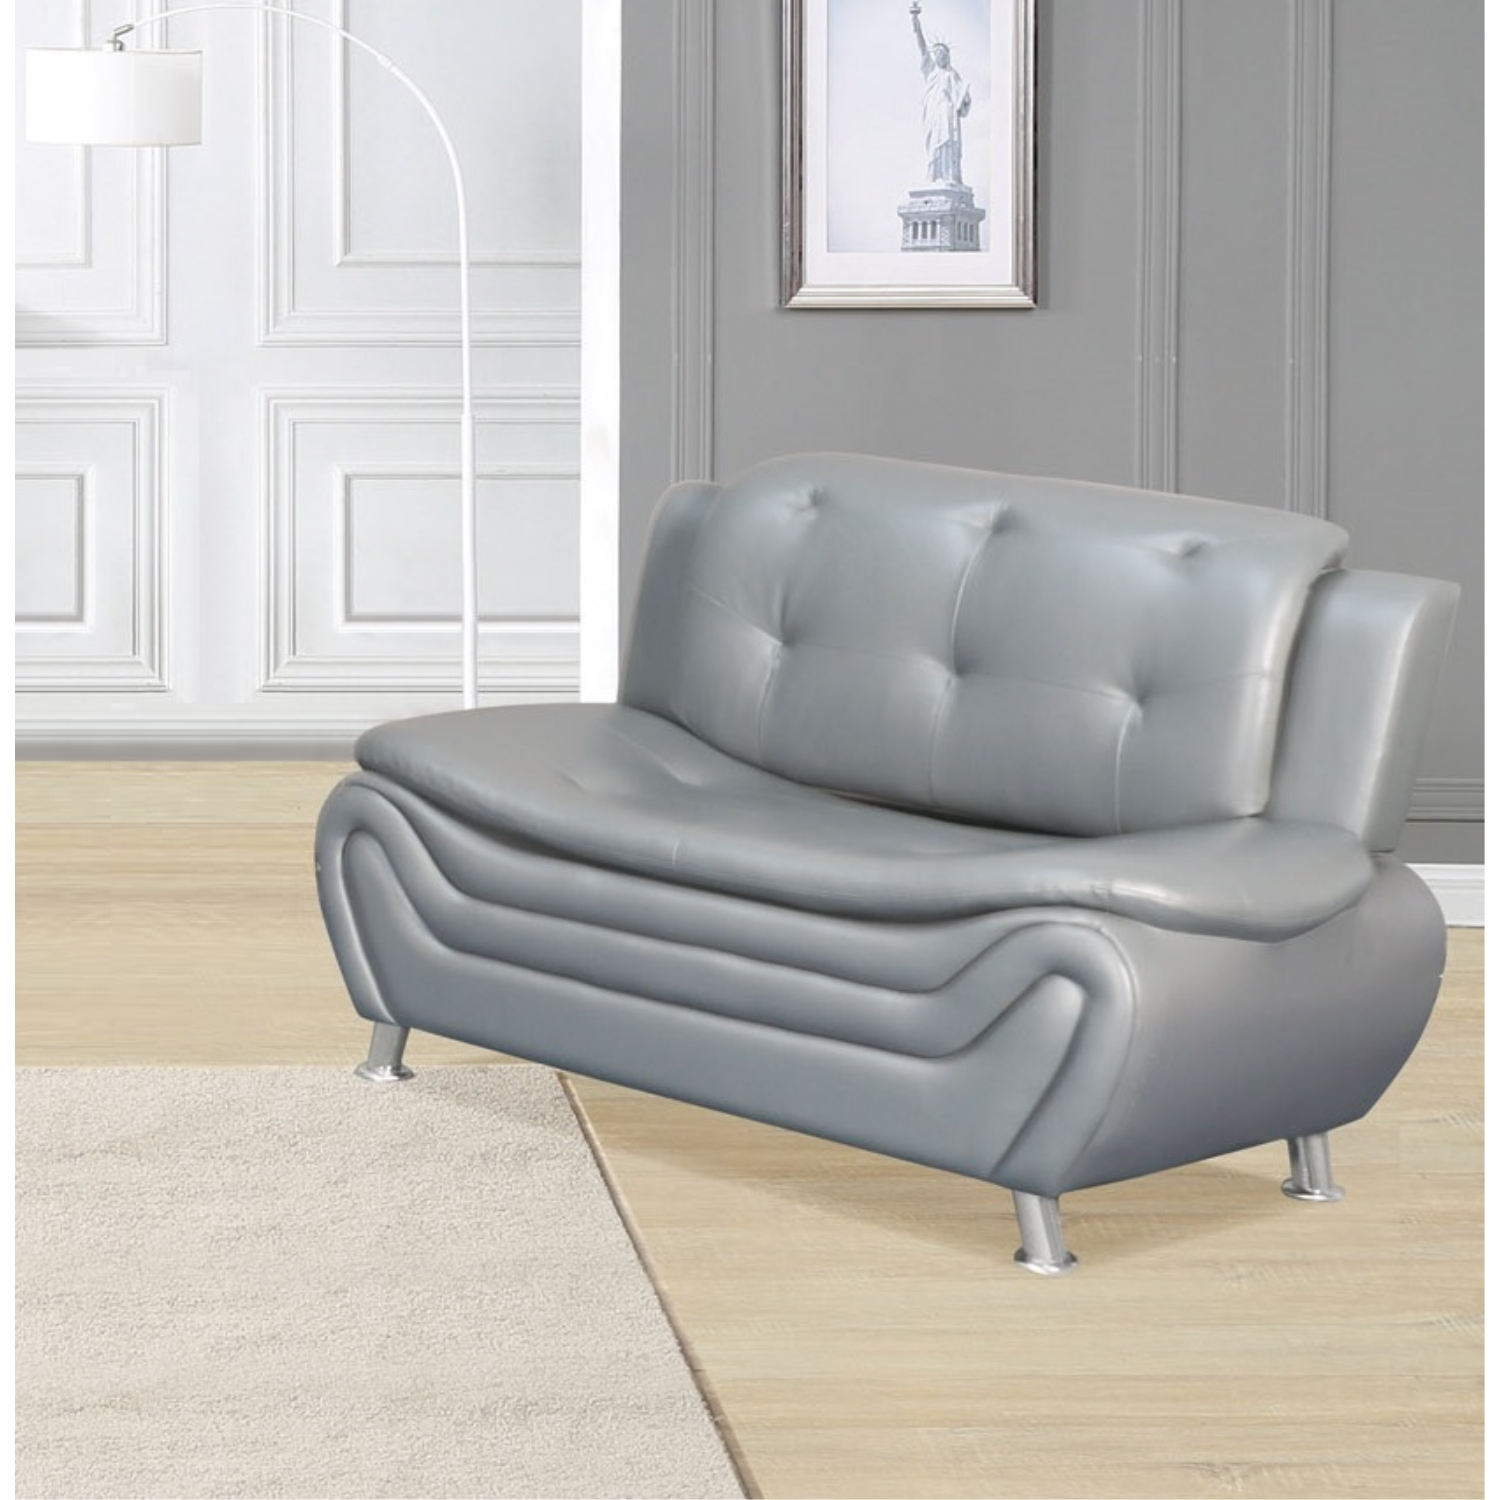 viscologic grandeur luxury pillow top tufted premium faux leather sofa couch for home office living room grey